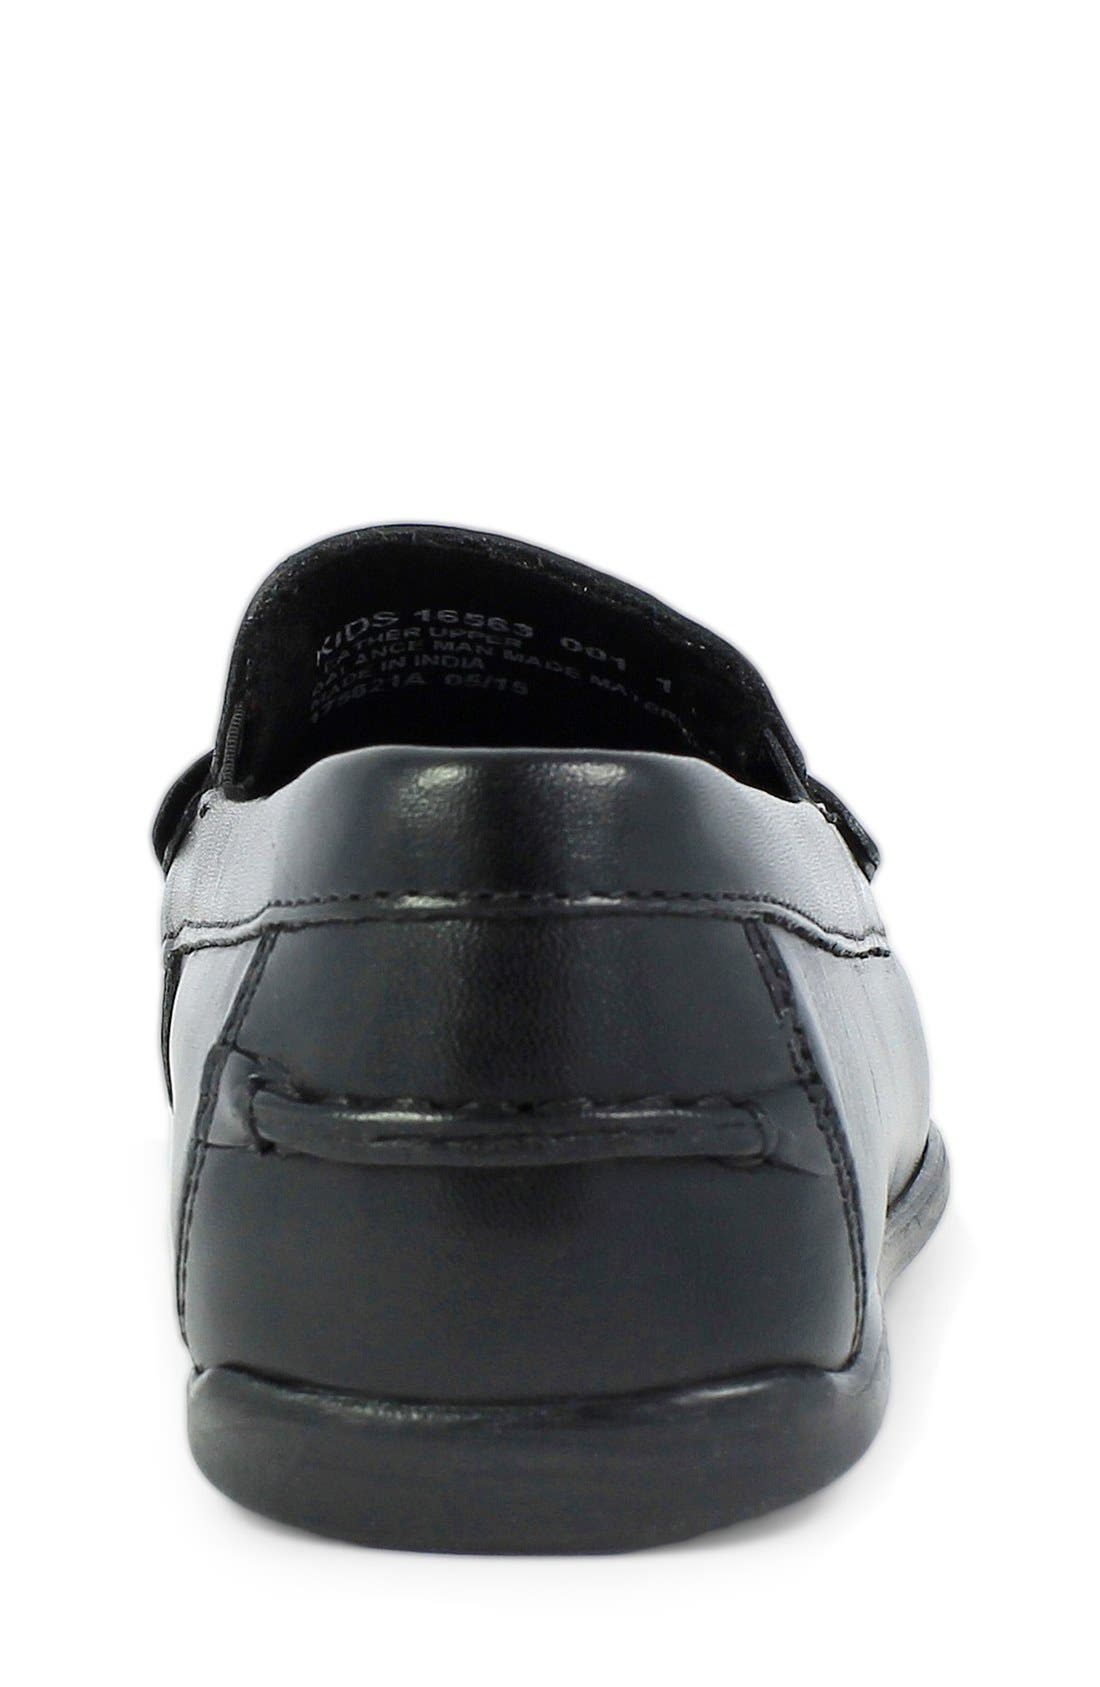 'Jasper - Driver Jr.' Loafer,                             Alternate thumbnail 6, color,                             BLACK LEATHER